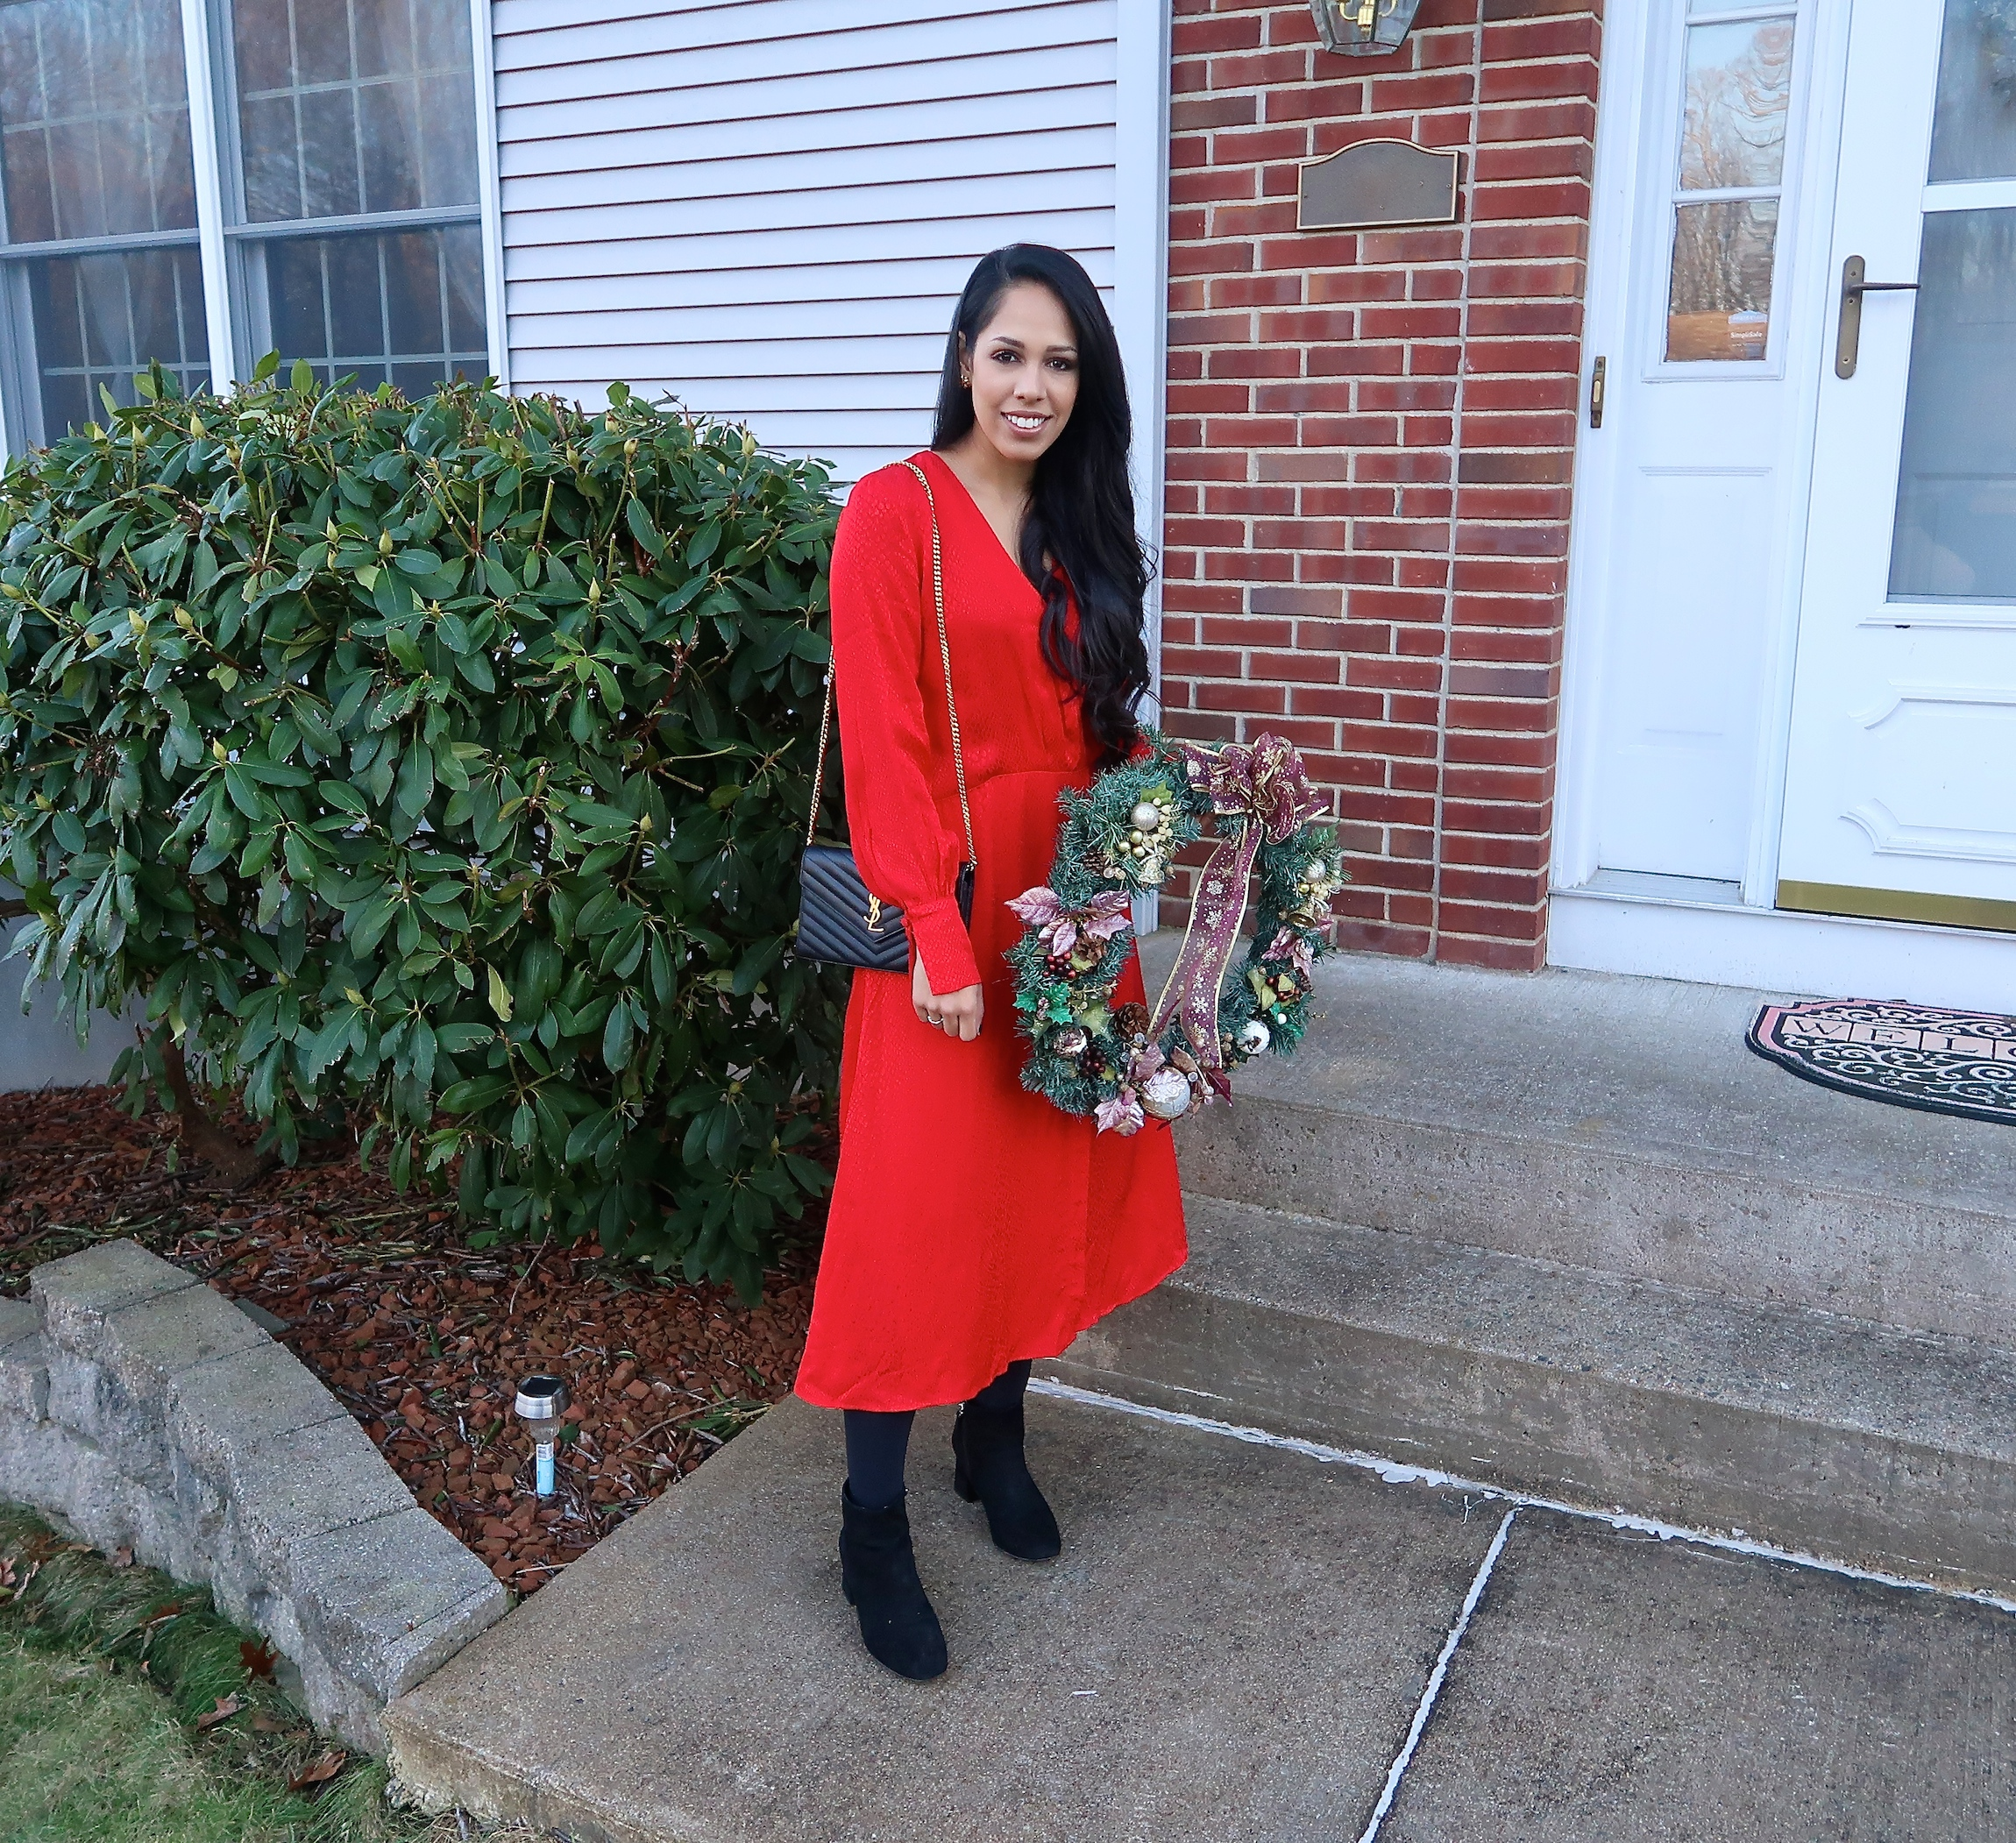 christmas-outfit-ideas-hm-red-dress.JPG